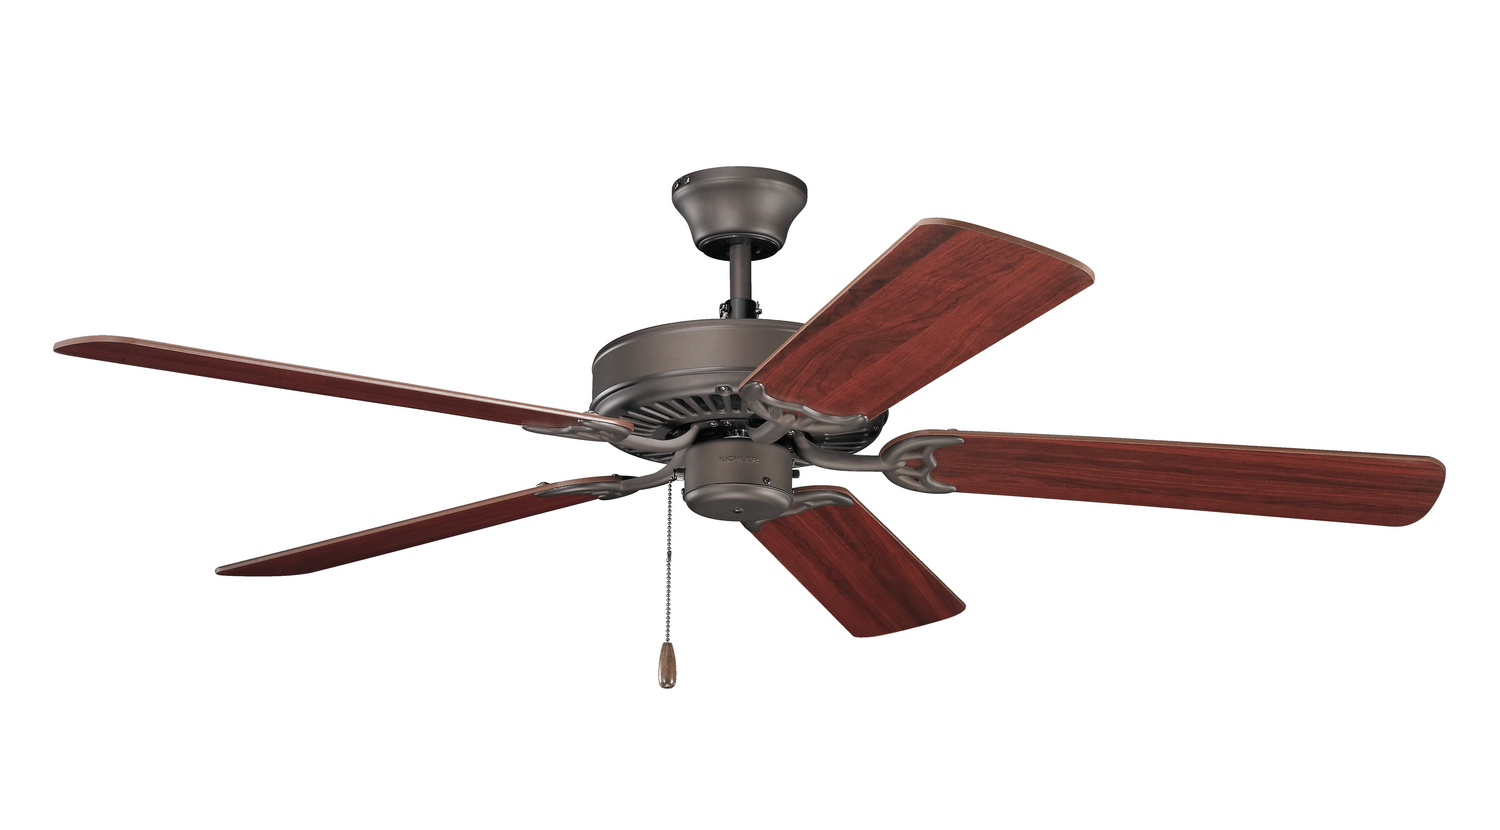 52 inchCeiling Fan from the Basics collection by Kichler 404SNB